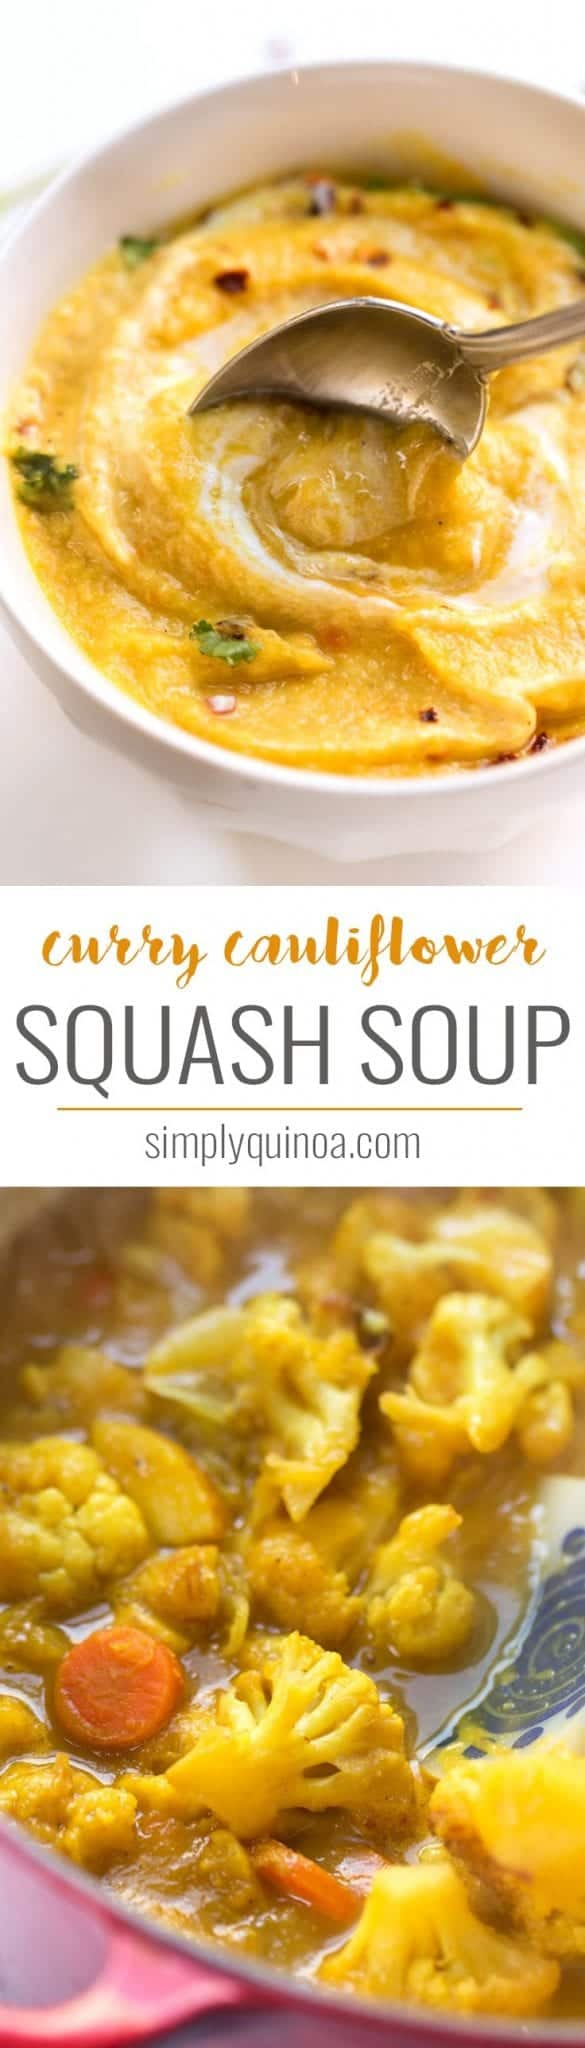 curried cauliflower squash soup